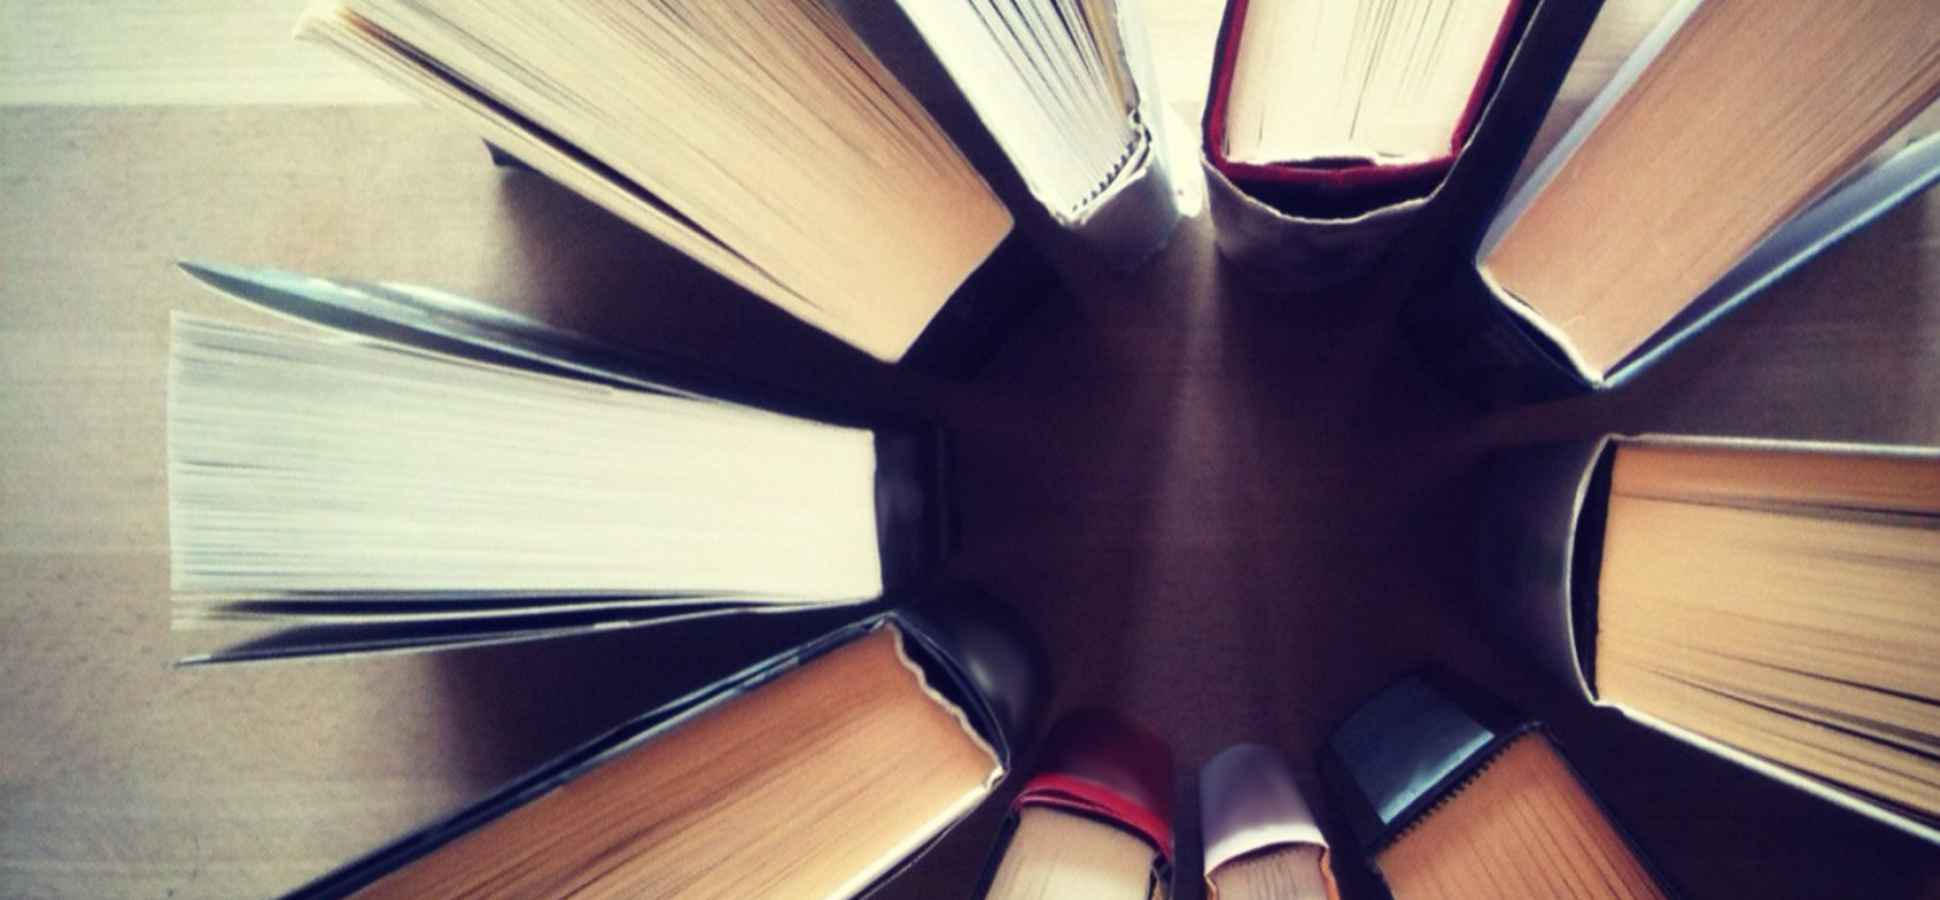 5 Books That Will Make You So Much Better at Marketing Yourself or Your Brand